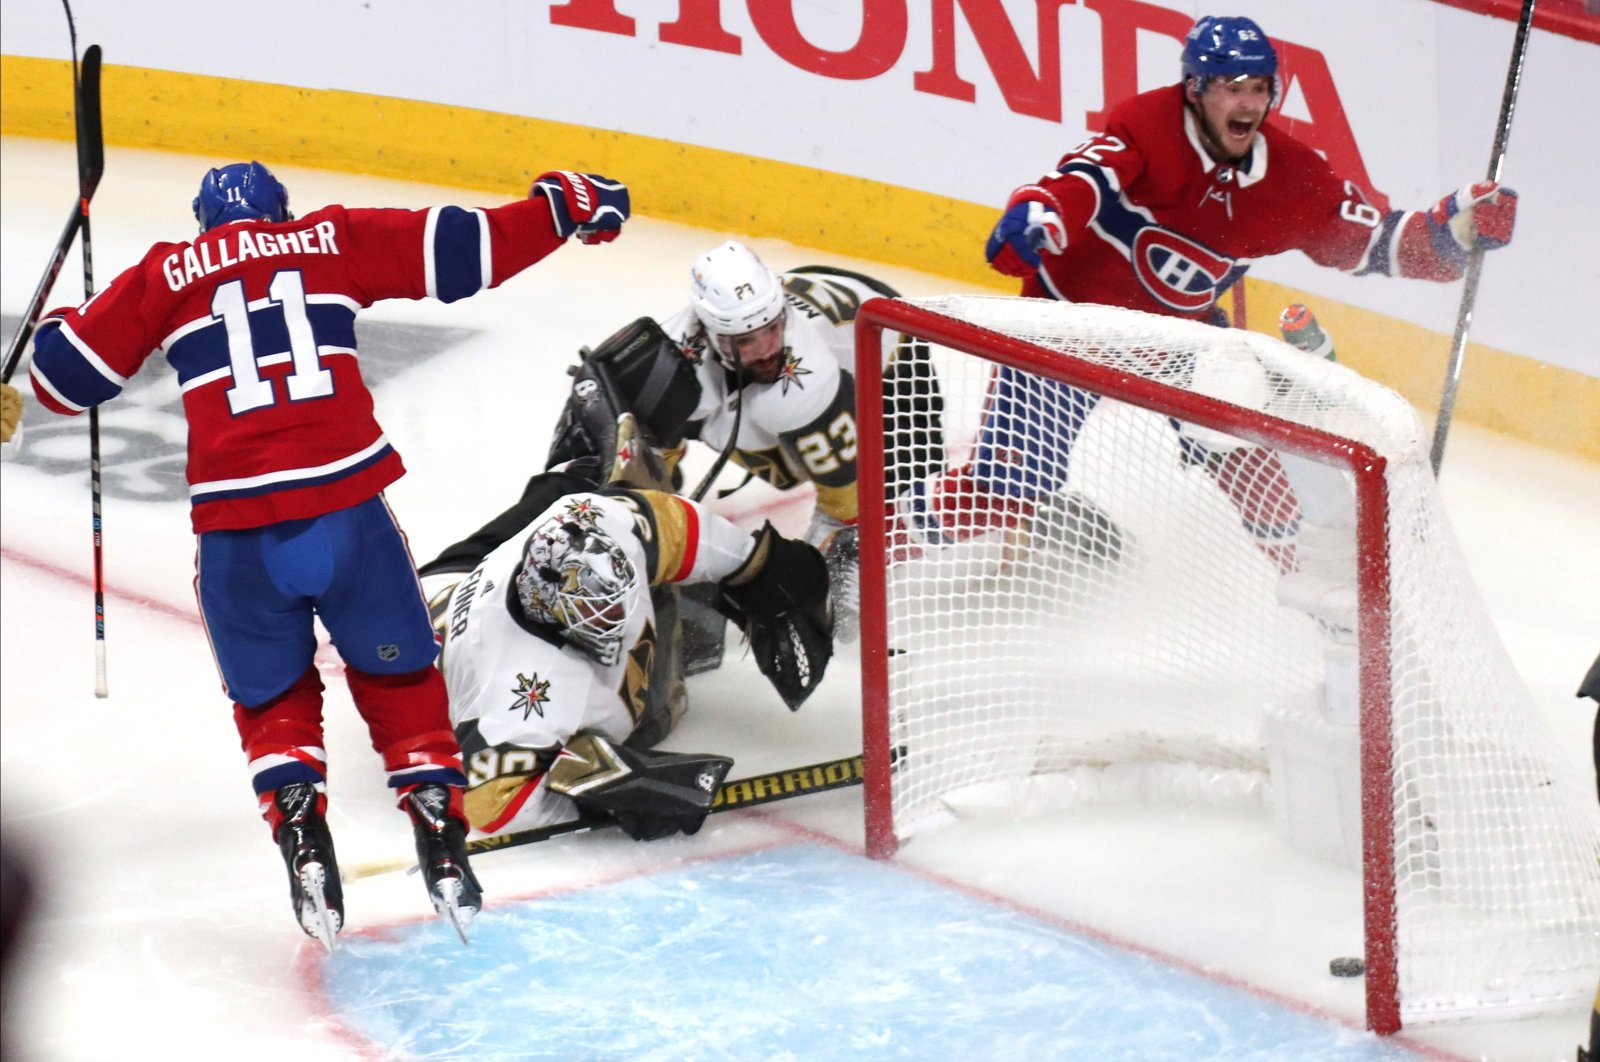 Montreal Canadiens left wing Artturi Lehkonen (62) celebrates his goal against Vegas Golden Knights goaltender Robin Lehner (90) with teammate right wing Brendan Gallagher (11) during an overtime period in game six of the 2021 Stanley Cup Semifinals at Bell Centre, Montreal, Canada, June 24, 2021. (Jean-Yves Ahern-USA TODAY Sports)